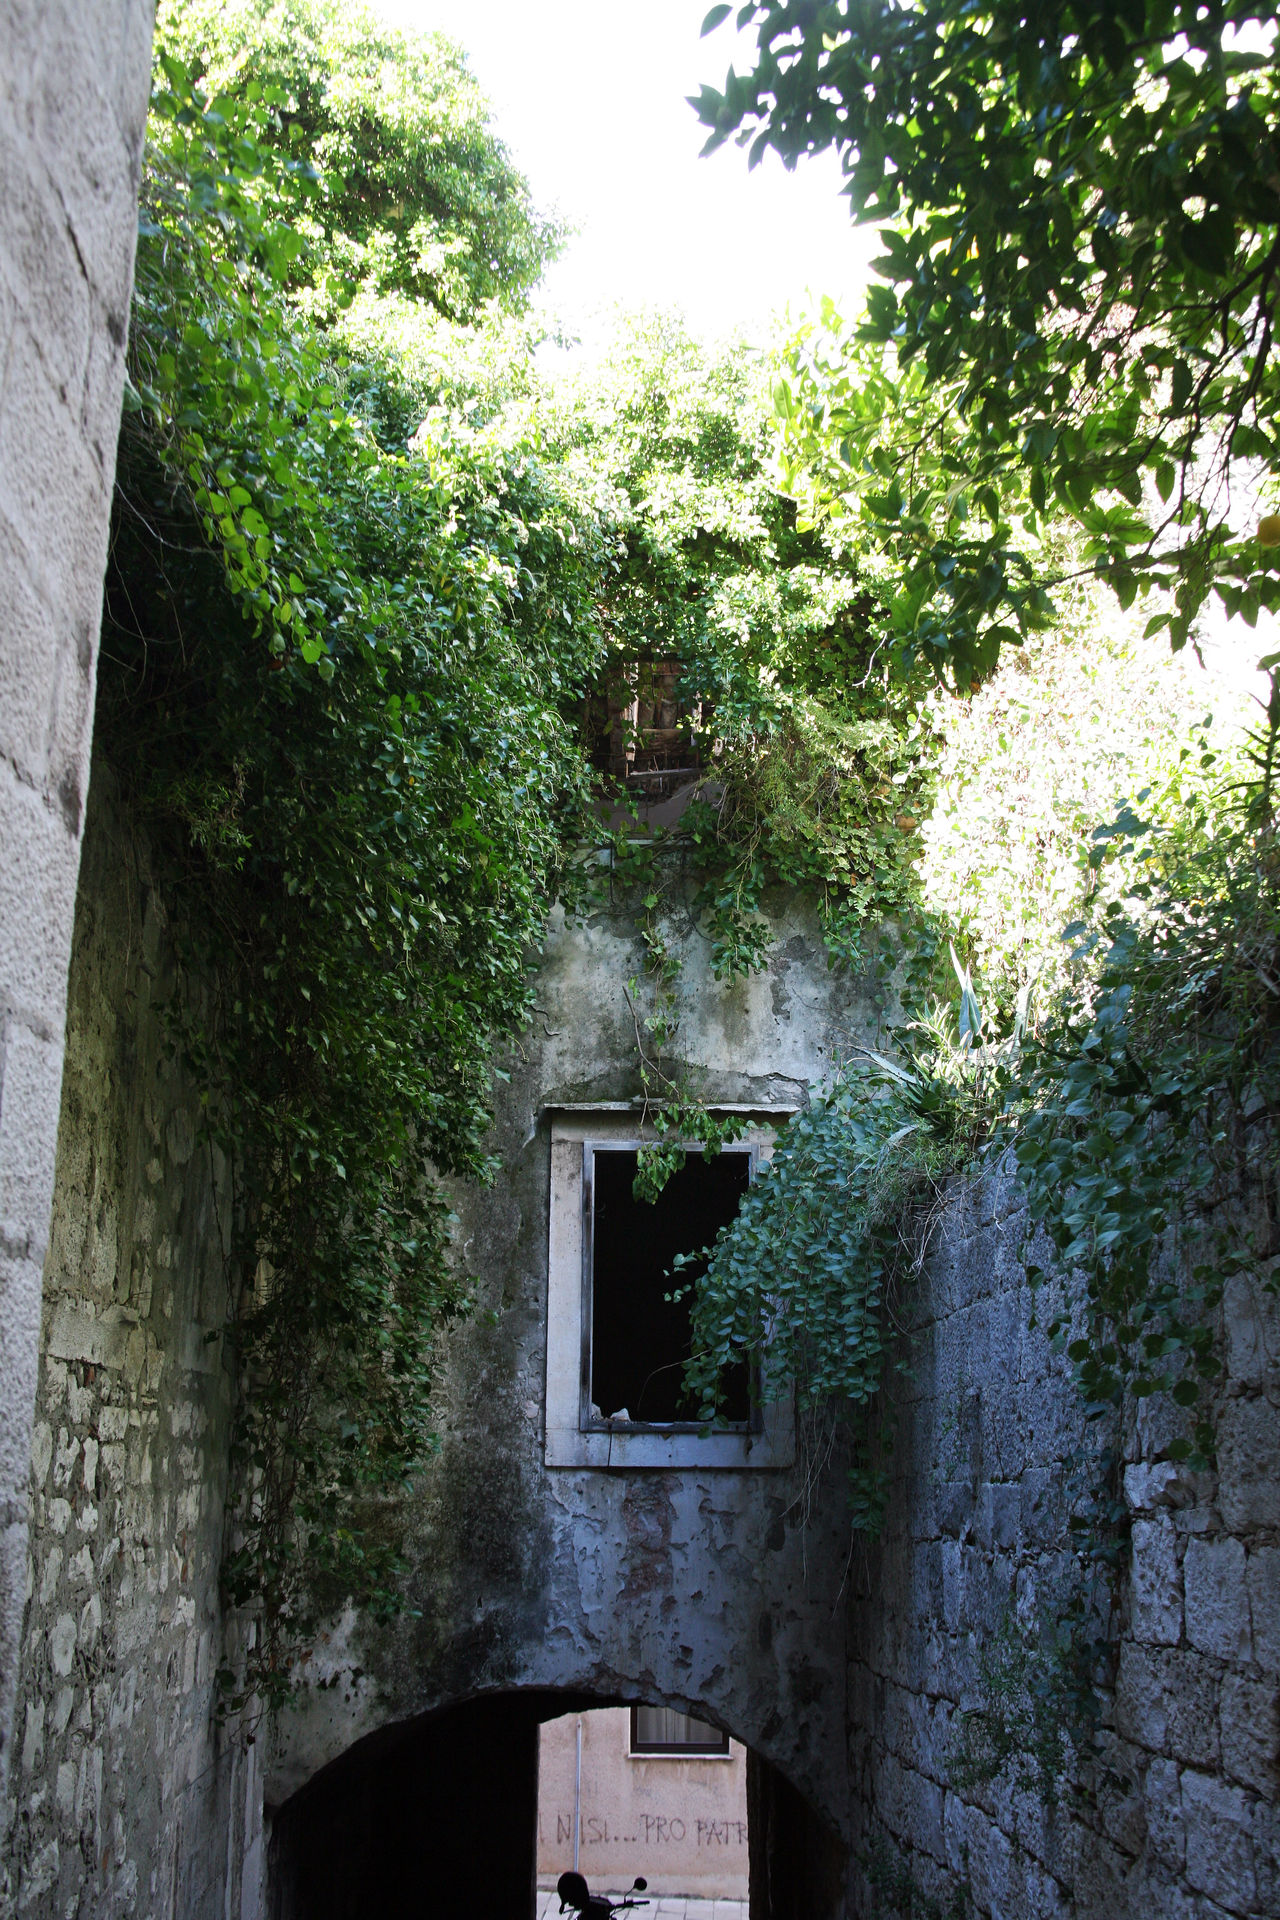 Korcula ancient architecture stone details,Croatia,Europe,3 Abandoned Adriatic Coast Ancient Architecture Building Exterior Built Structure Croatia Day Eu Europe Ivy Korčula Nature No People Old Outdoors Ruin Street Tourism Tree Urban Winter